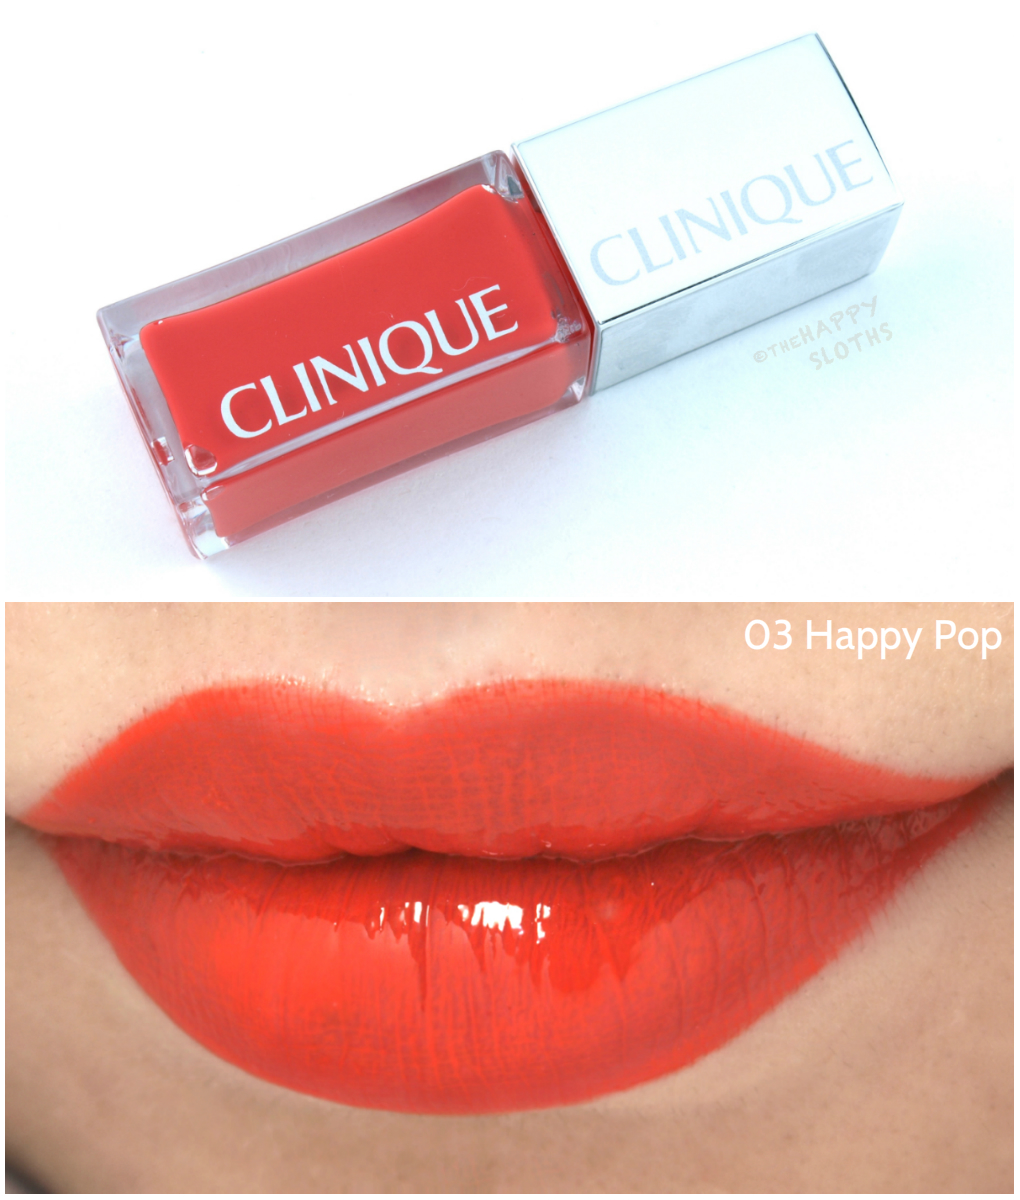 clinique-pop-lacquer-lip-color-plus-primer-03-happy-pop-swatches-review